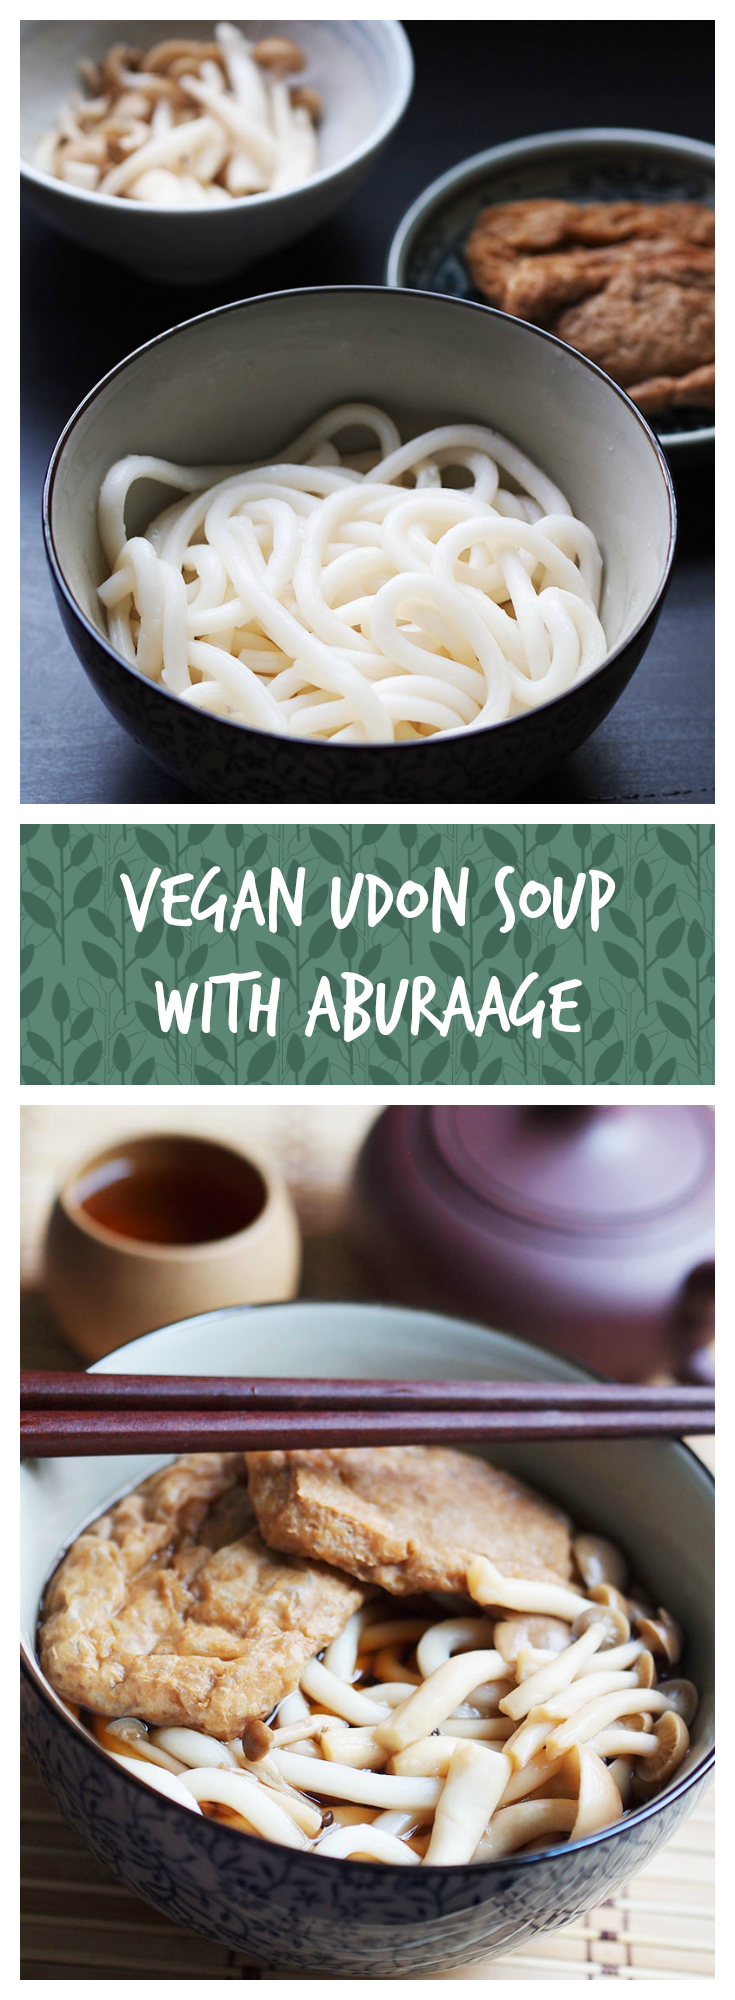 This vegan udon soup with seasoned aburaage (fried tofu pouch) is so easy to make, yet it is warm and comforting - perfect for a lazy day! #vegan #udon #soup #tofu #pouch #aburaage #japanese #vegetarian #asian #noonionnogarlic #recipe #thelazybroccoli